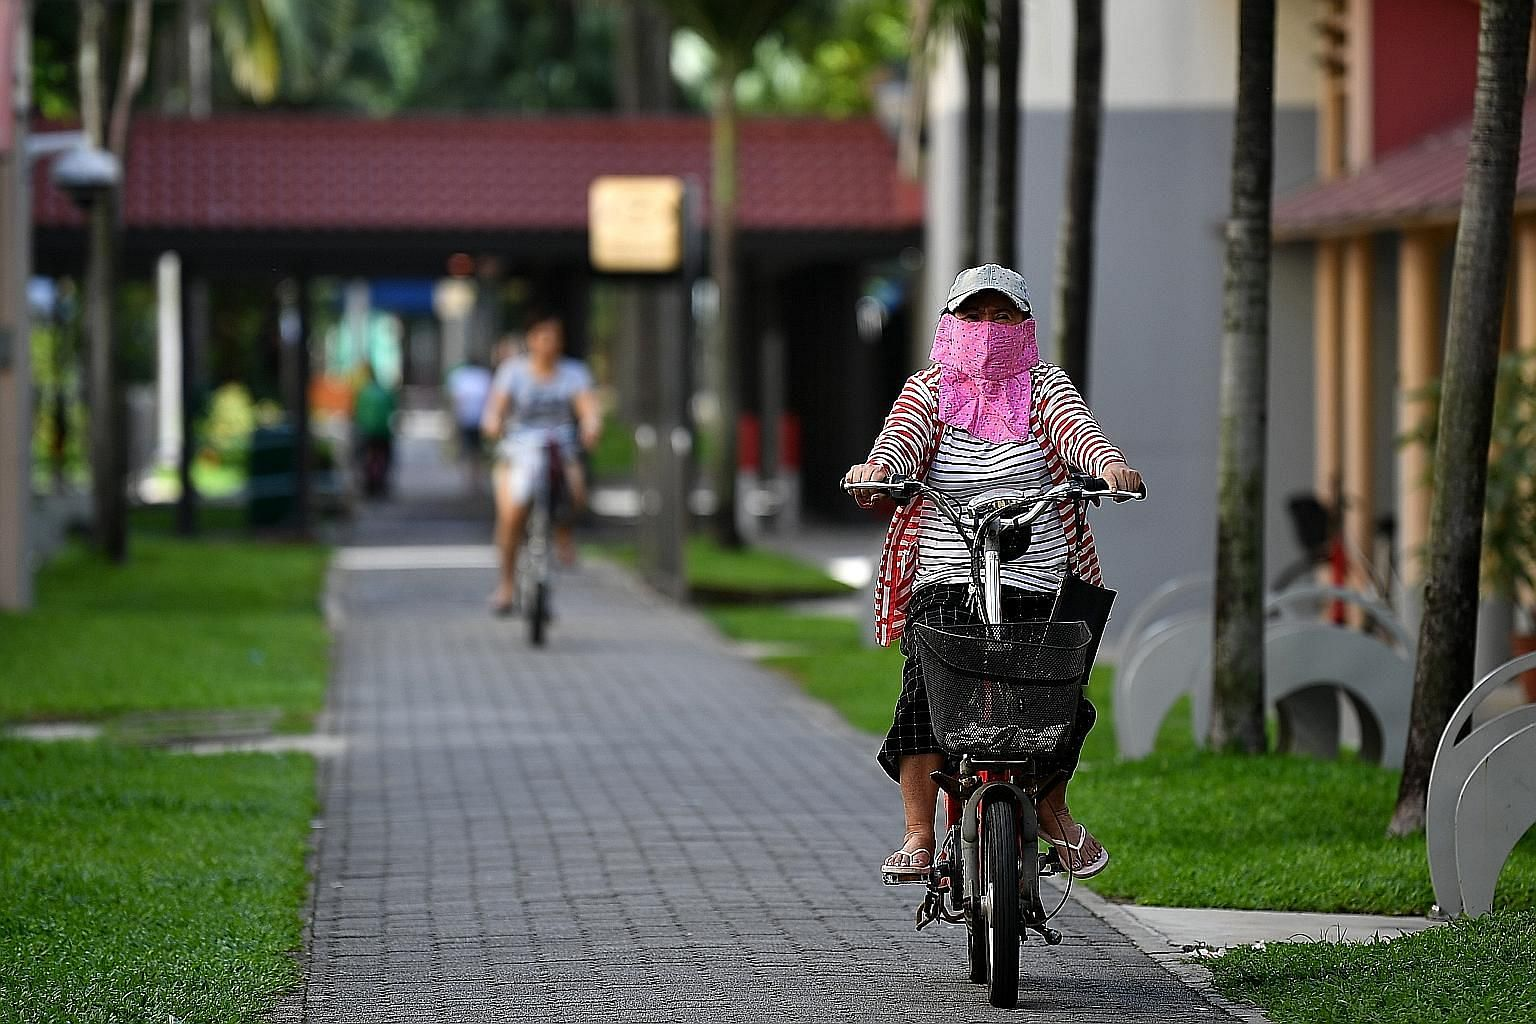 The final goal will be to triple the current network from 440km to 1,320km by 2030, said Senior Minister of State for Transport Lam Pin Min. This cycling path density will allow residents to reach their nearest town centre within 20 minutes by walkin